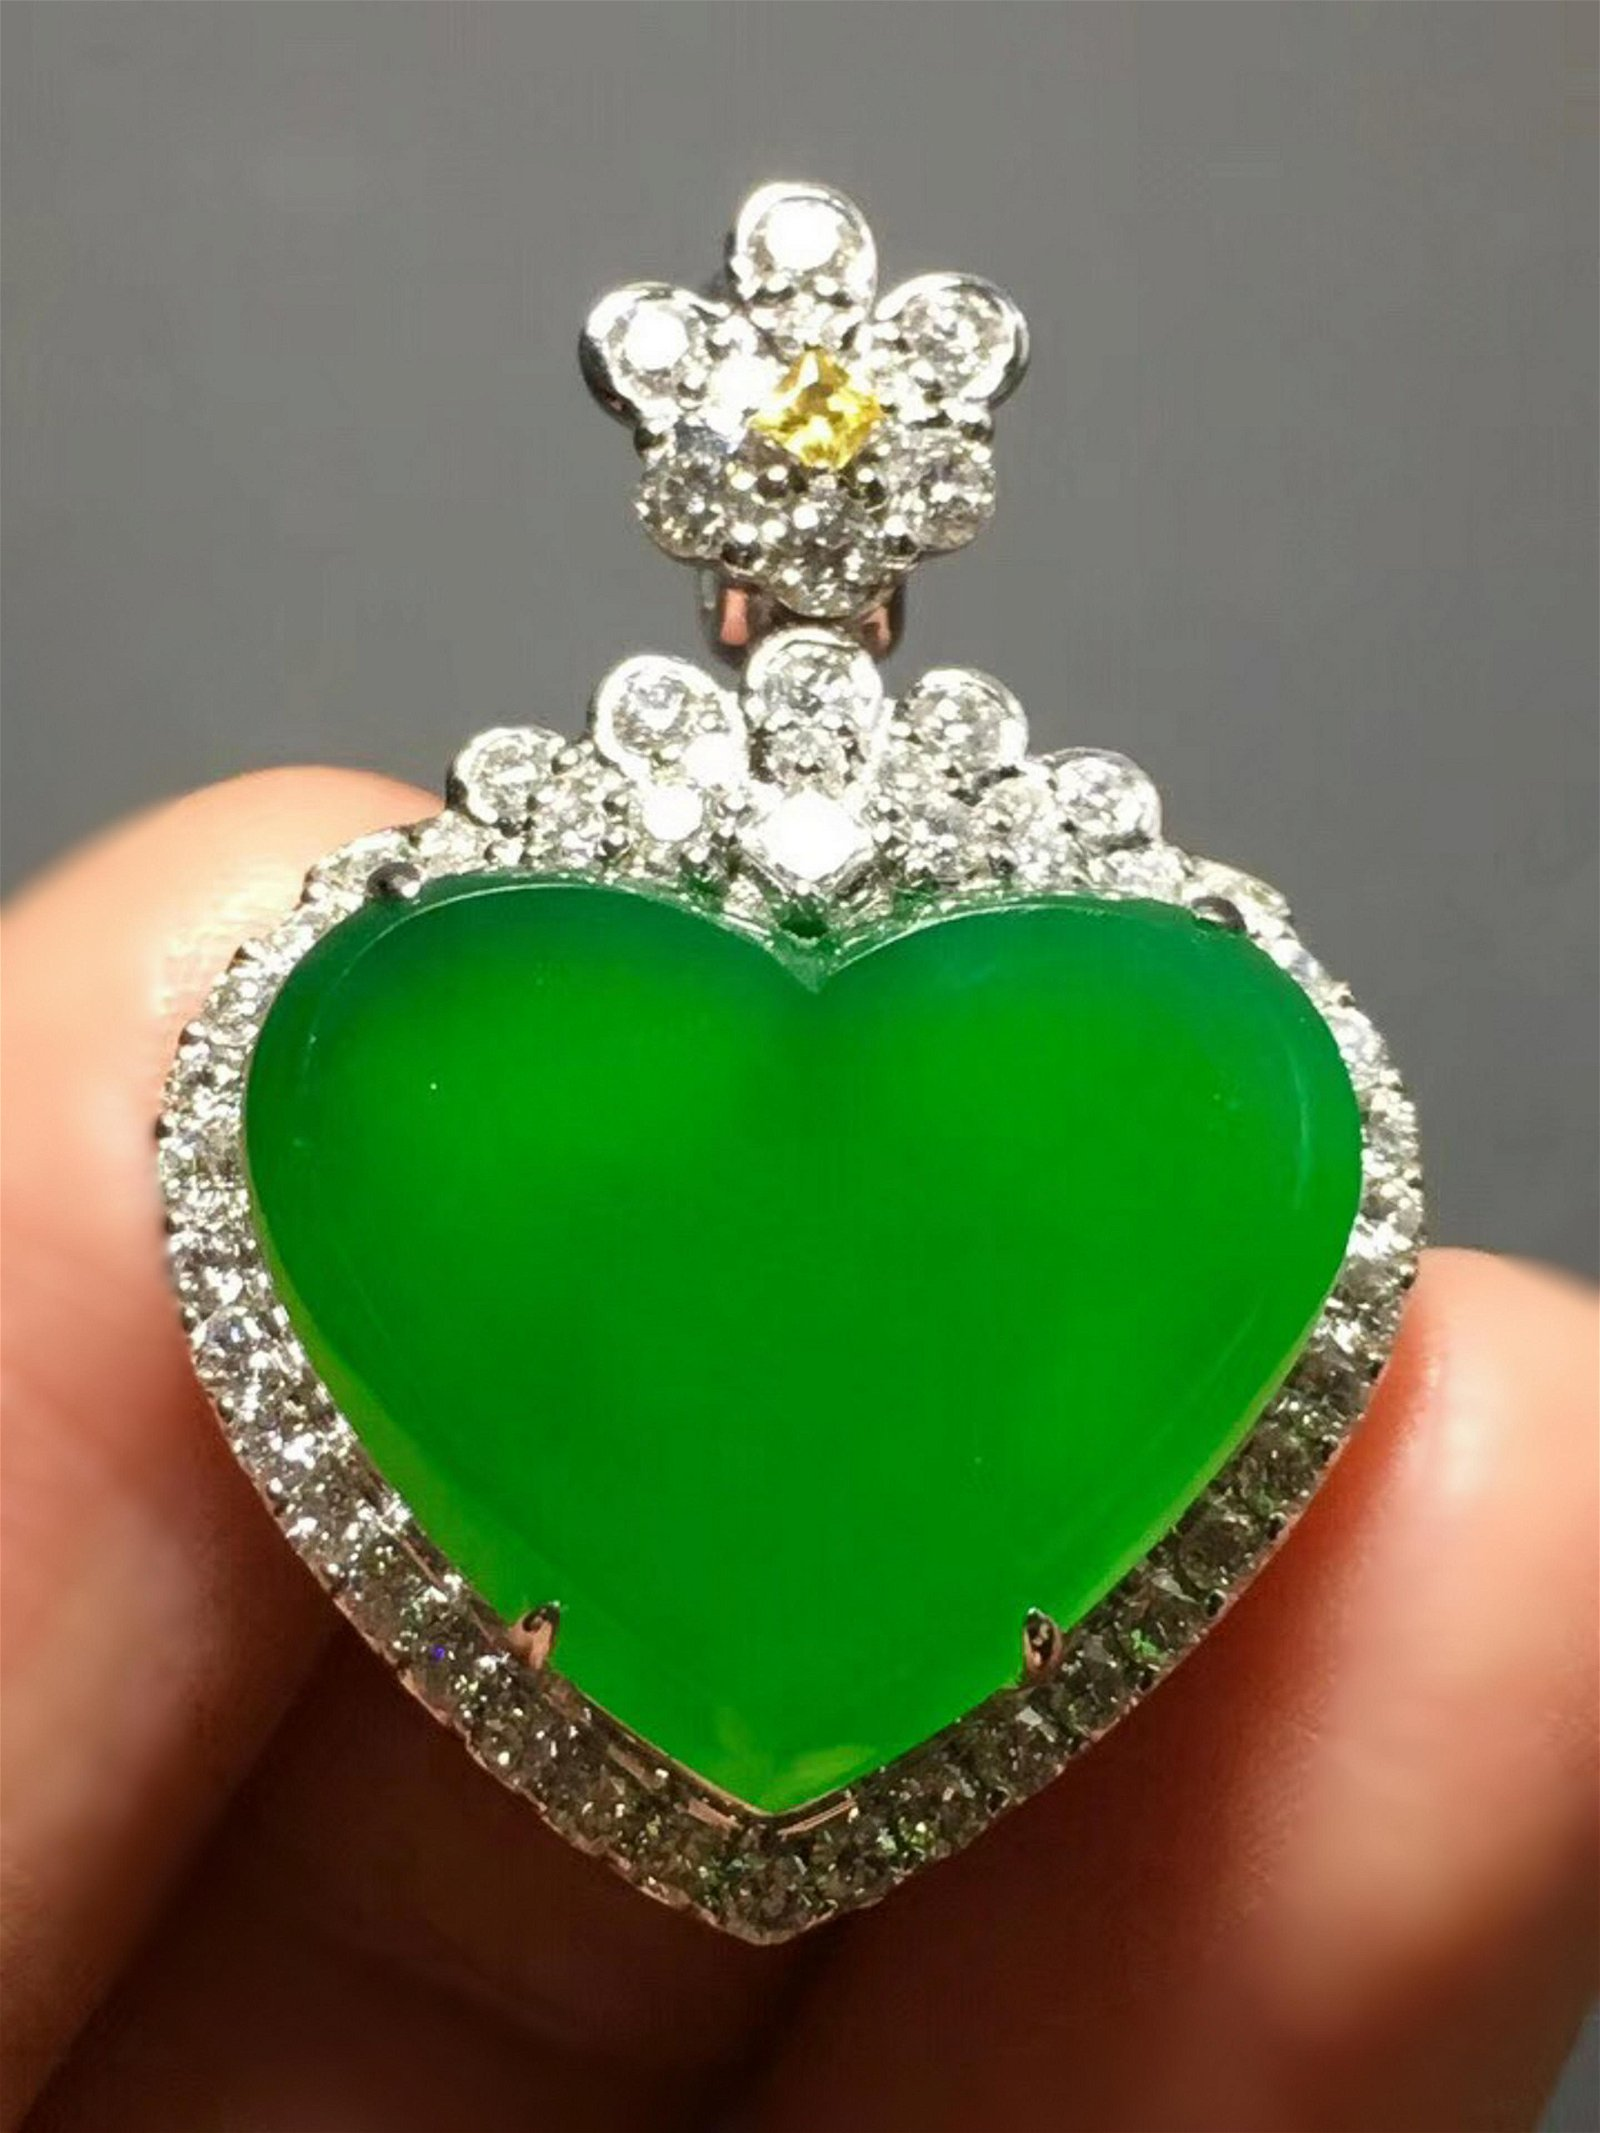 A GREEN JADEITE HEART SHAPED PENDANT